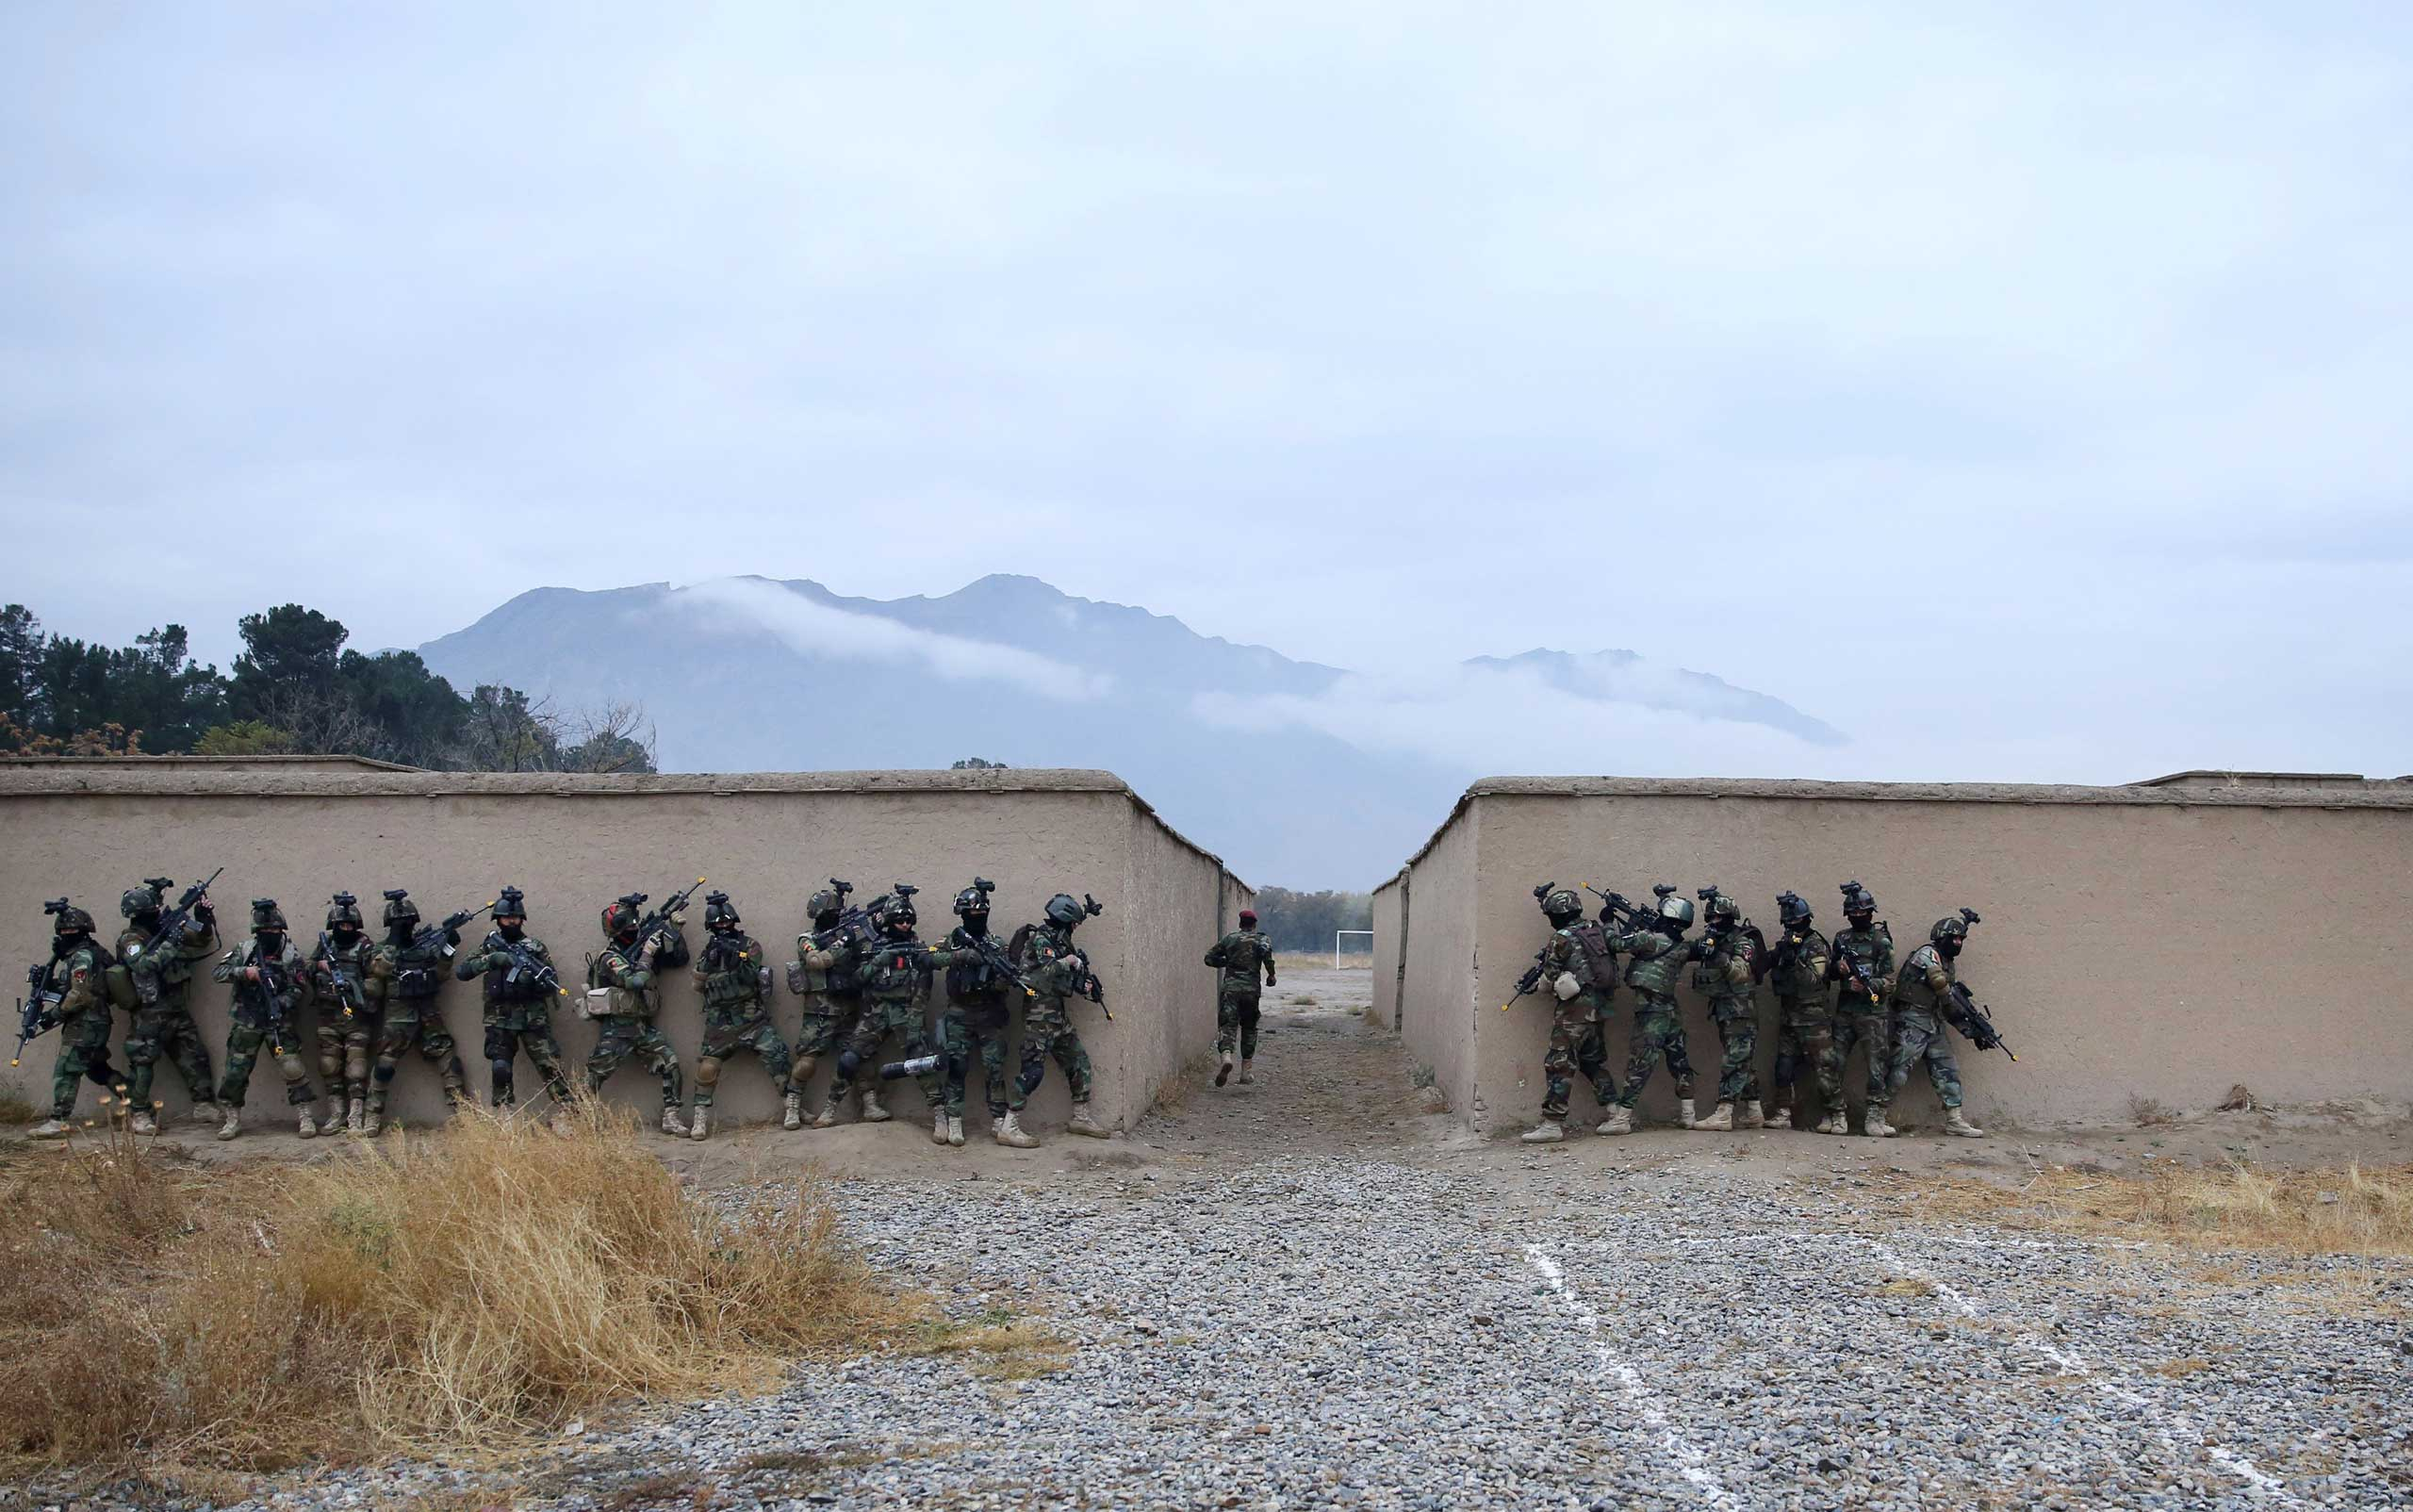 Nov. 6, 2014. Afghan special forces demonstrate their skills during Secretary General of NATO Jens Stoltenberg's first visit as the head of NATO at the special forces training camp in Kabul.